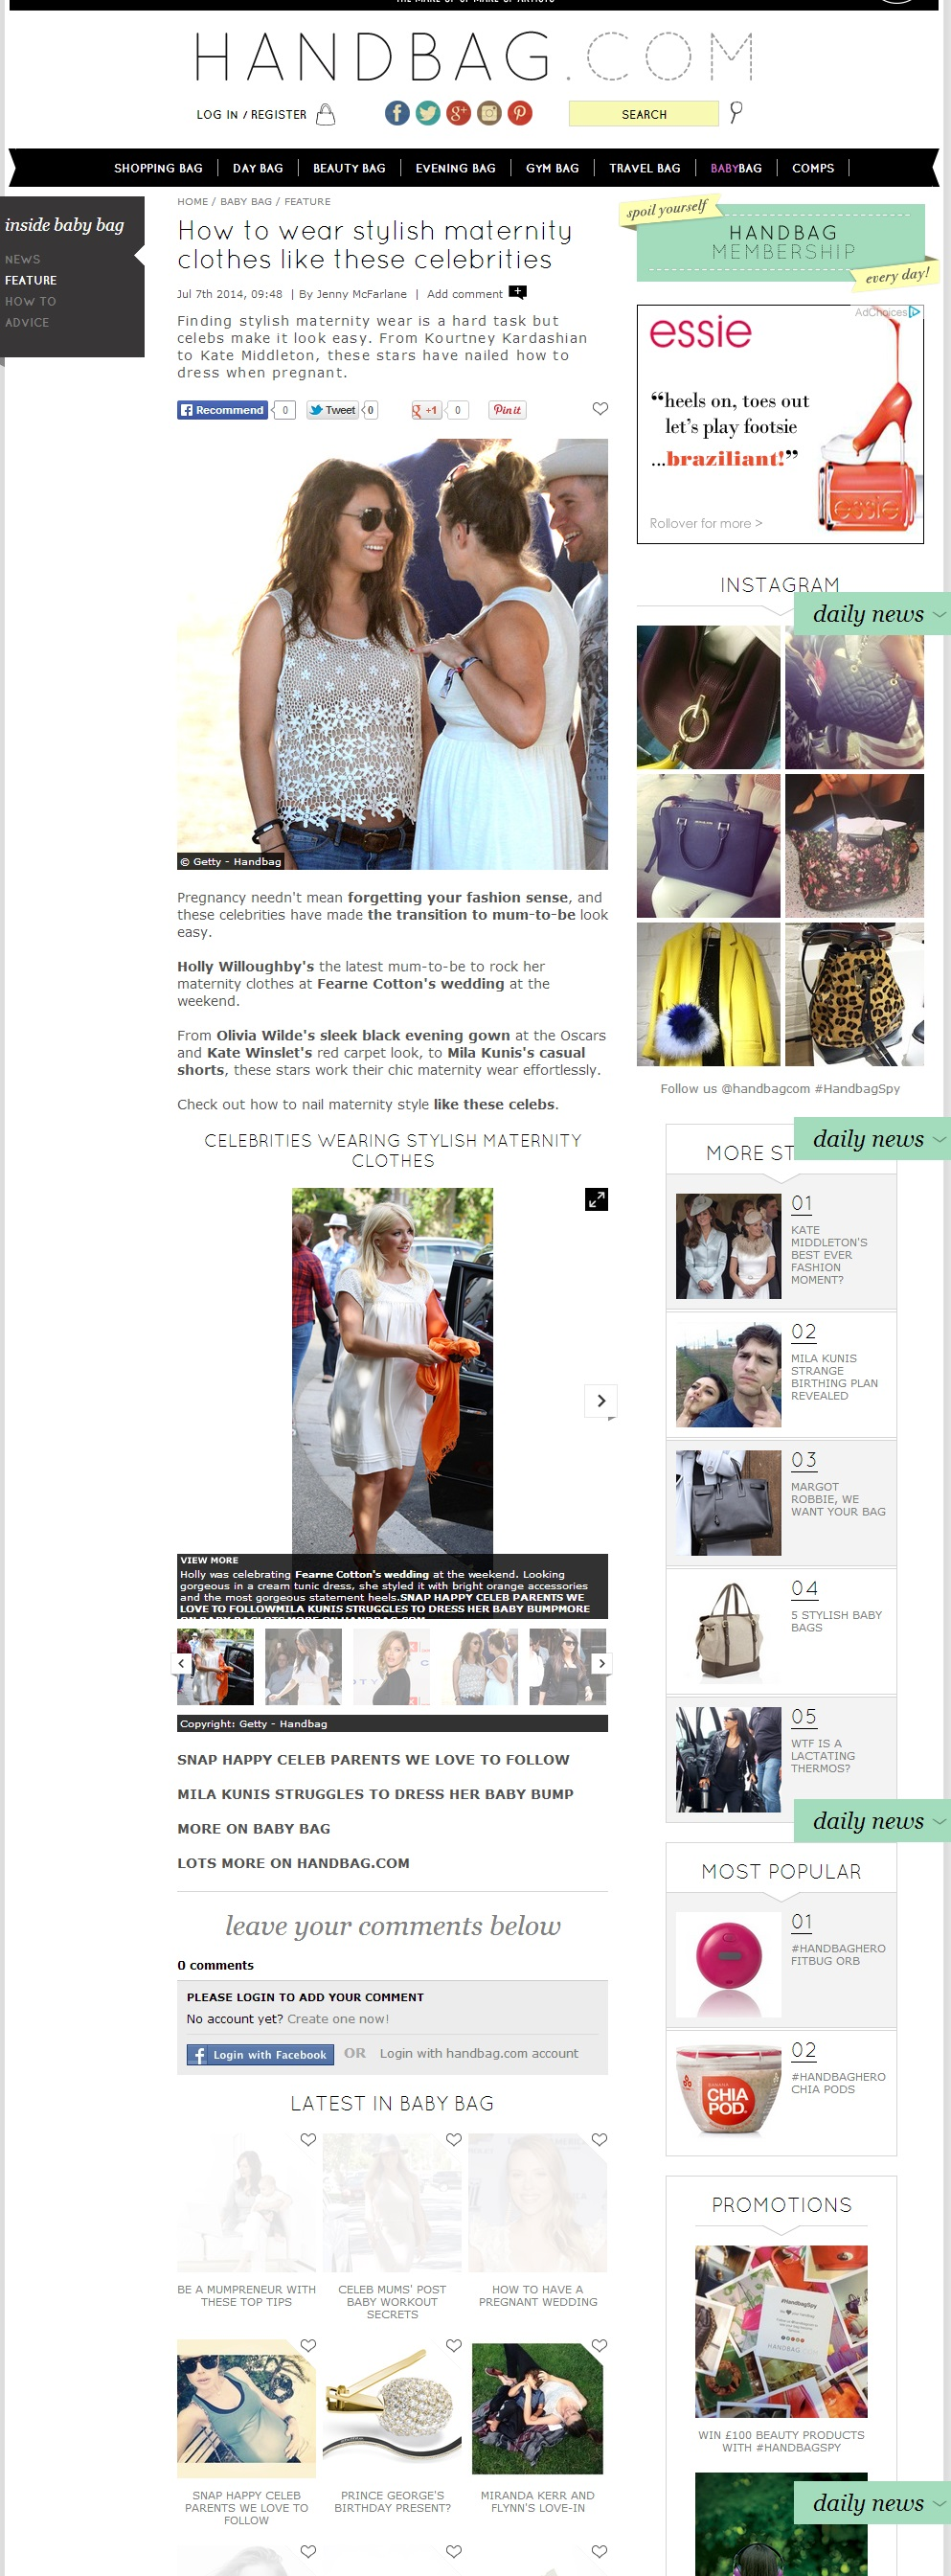 screencapture-www-handbag-com-baby-bag-feature-a415803-how-to-wear-stylish-maternity-clothes-like-these-celebrities-html